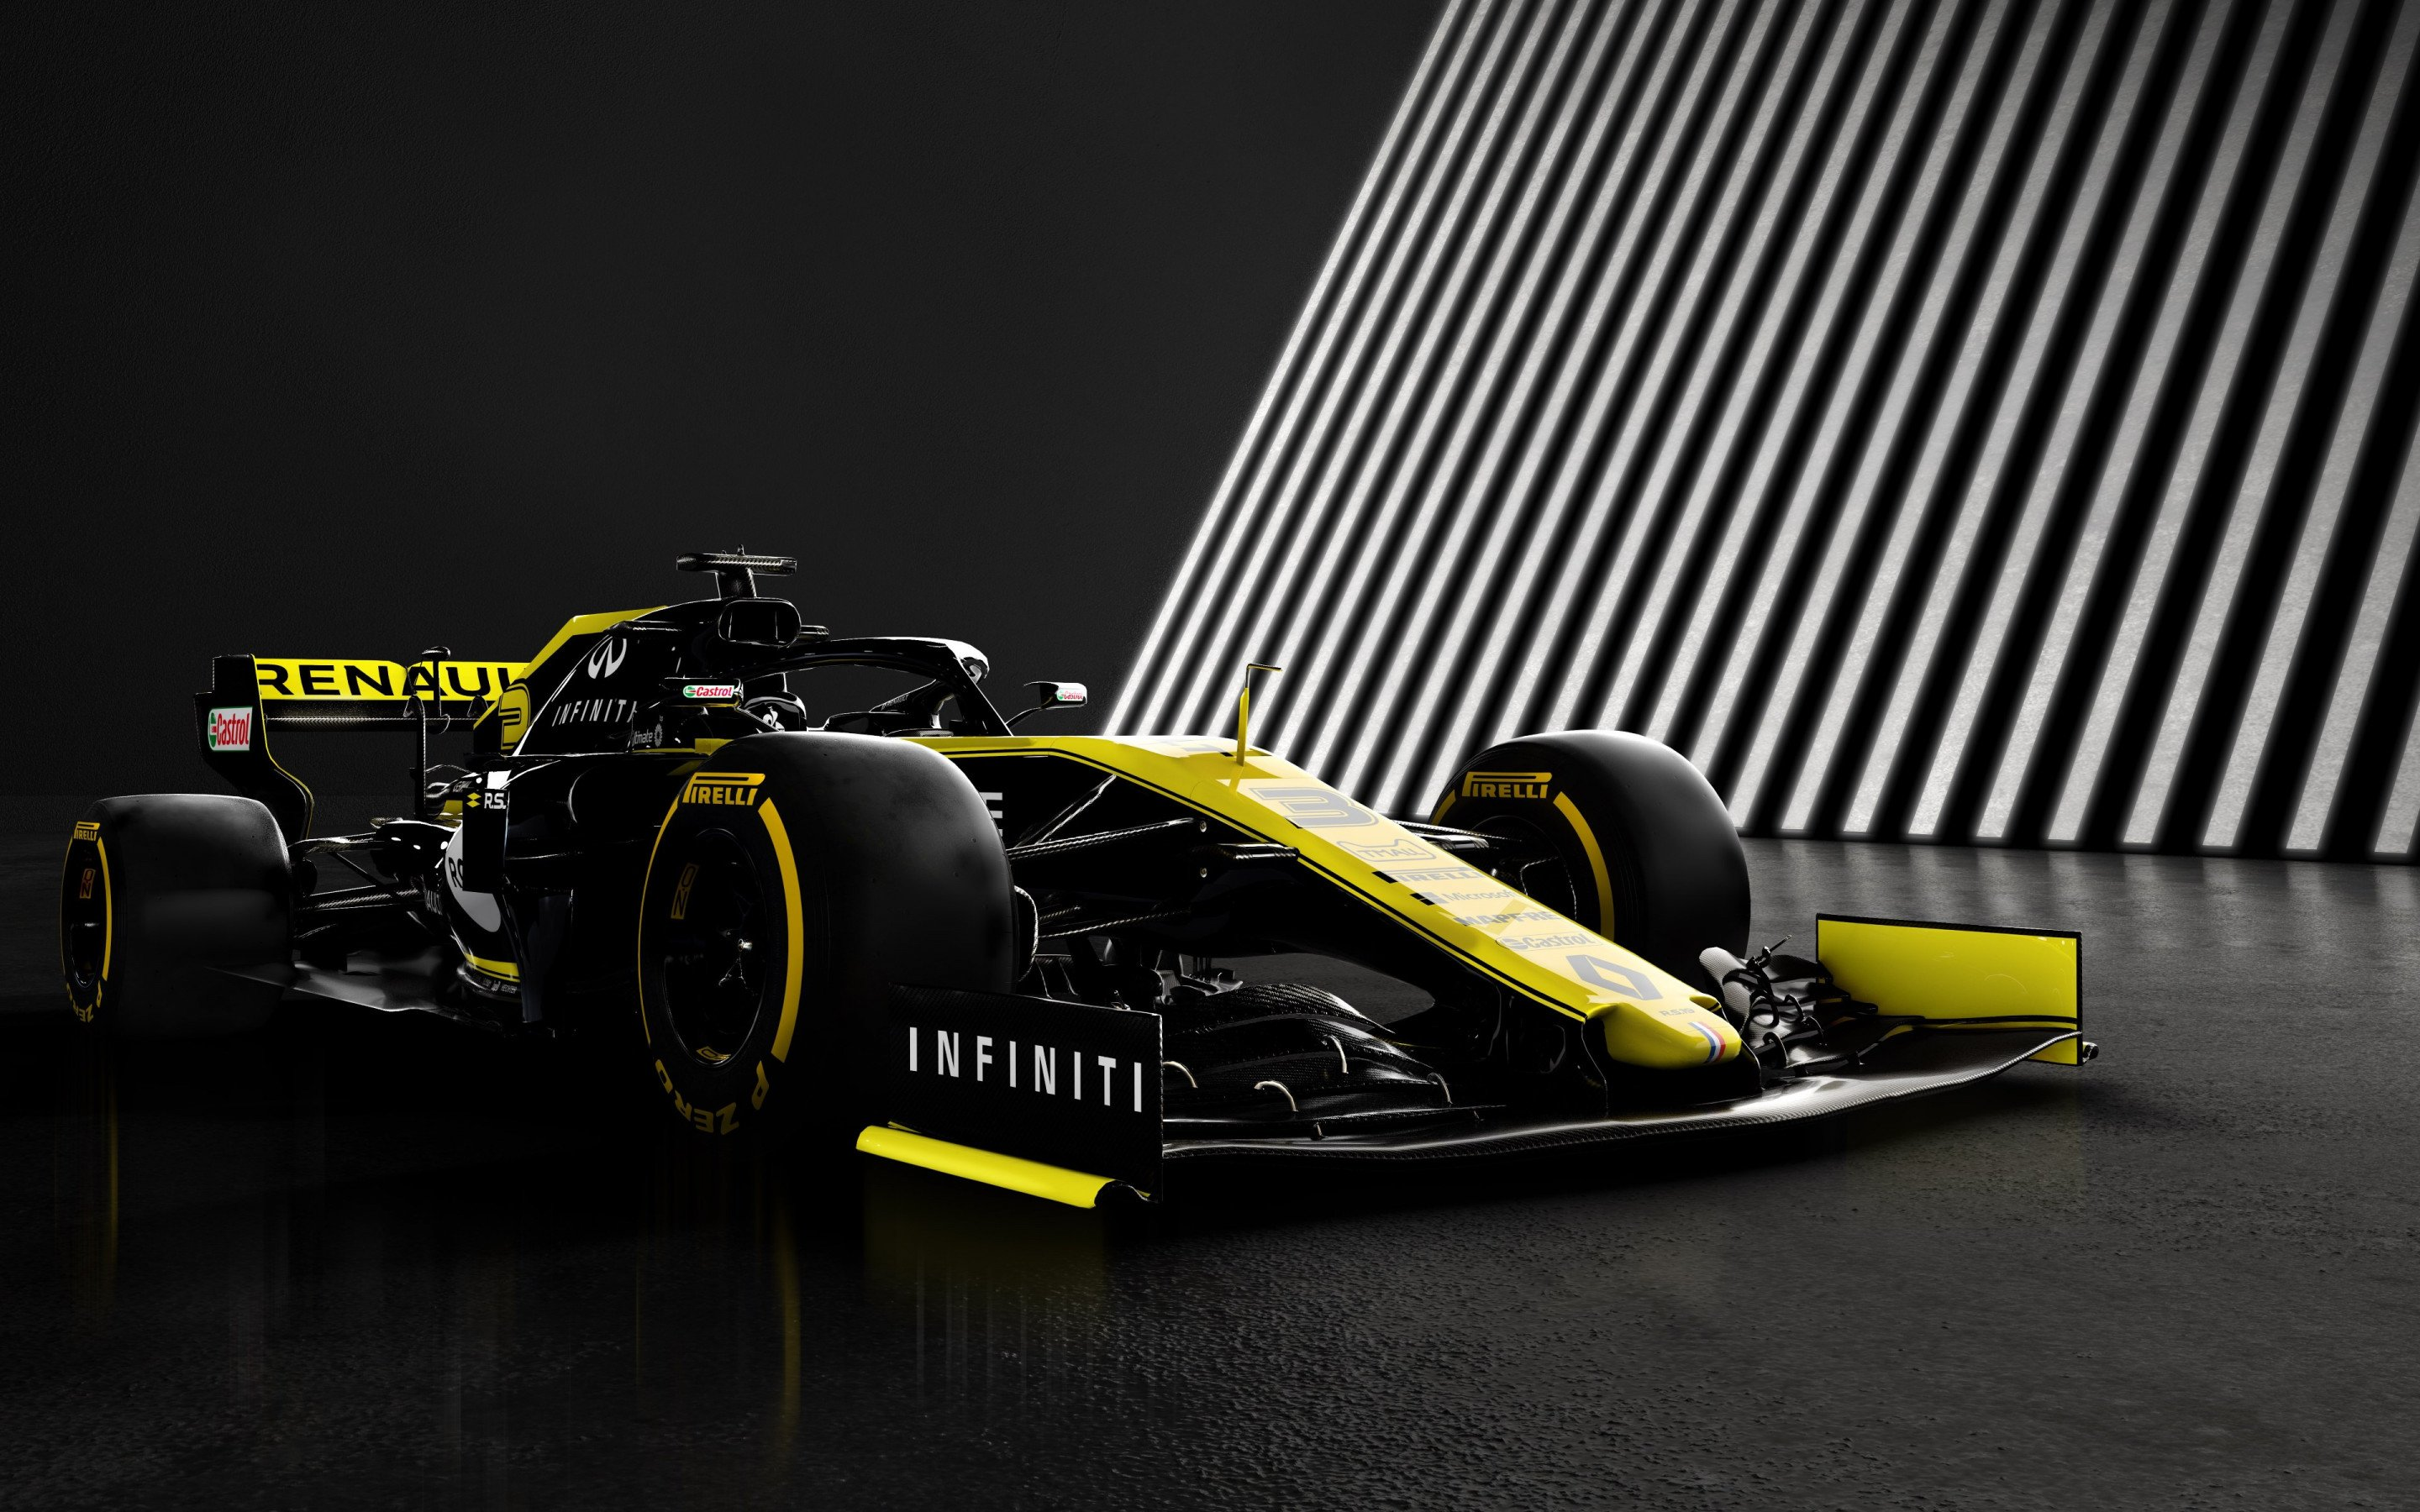 Download wallpaper Renault F1 RS19 2880x1800 2880x1800